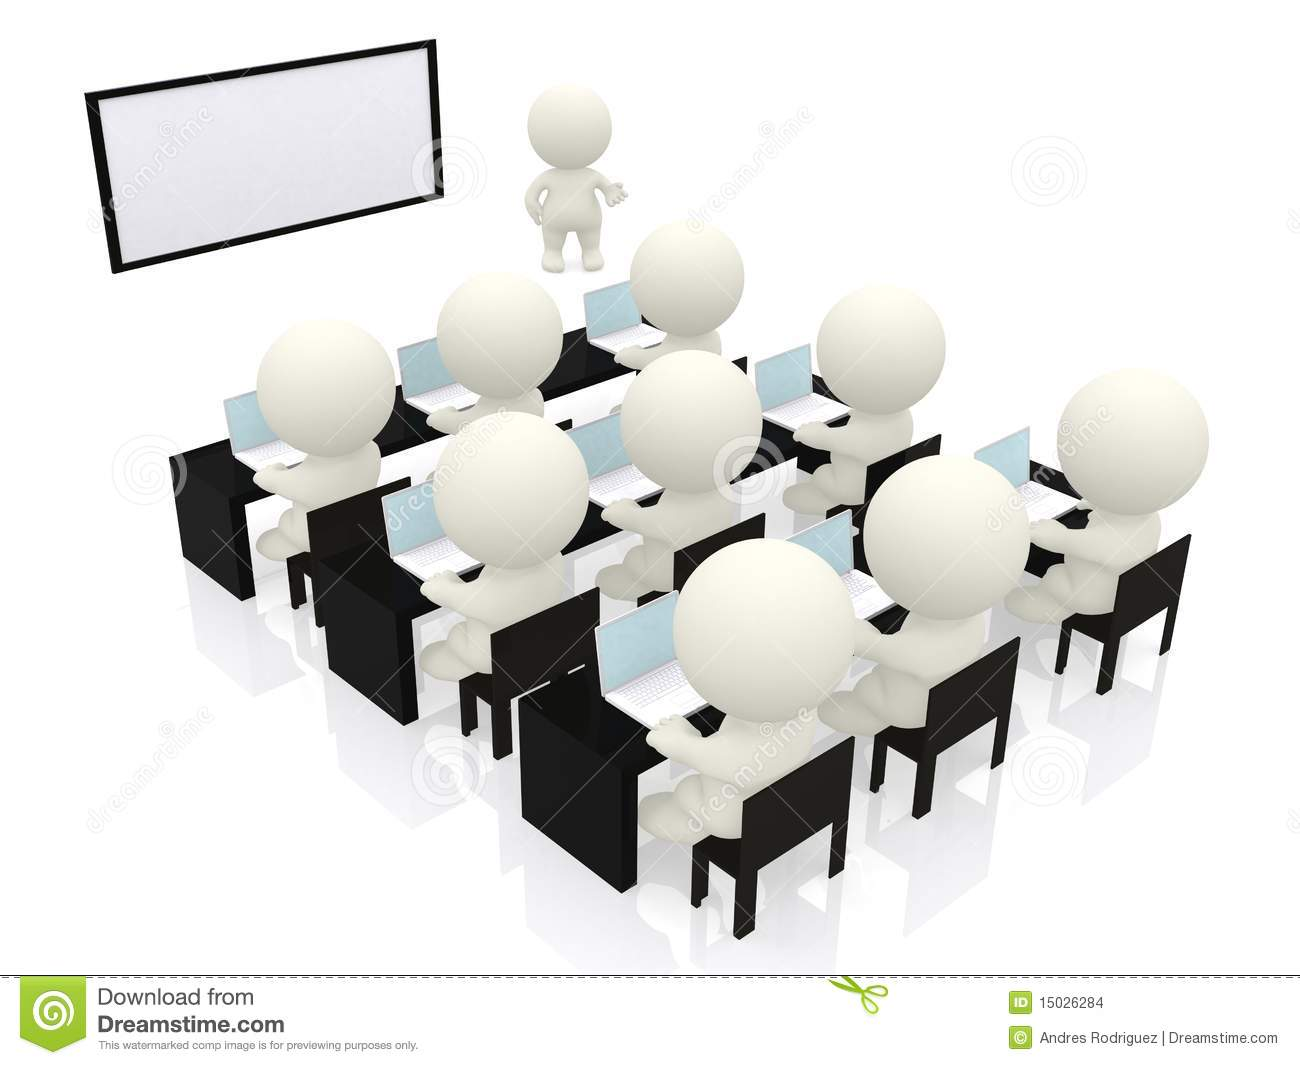 ppt clipart gallery - photo #14